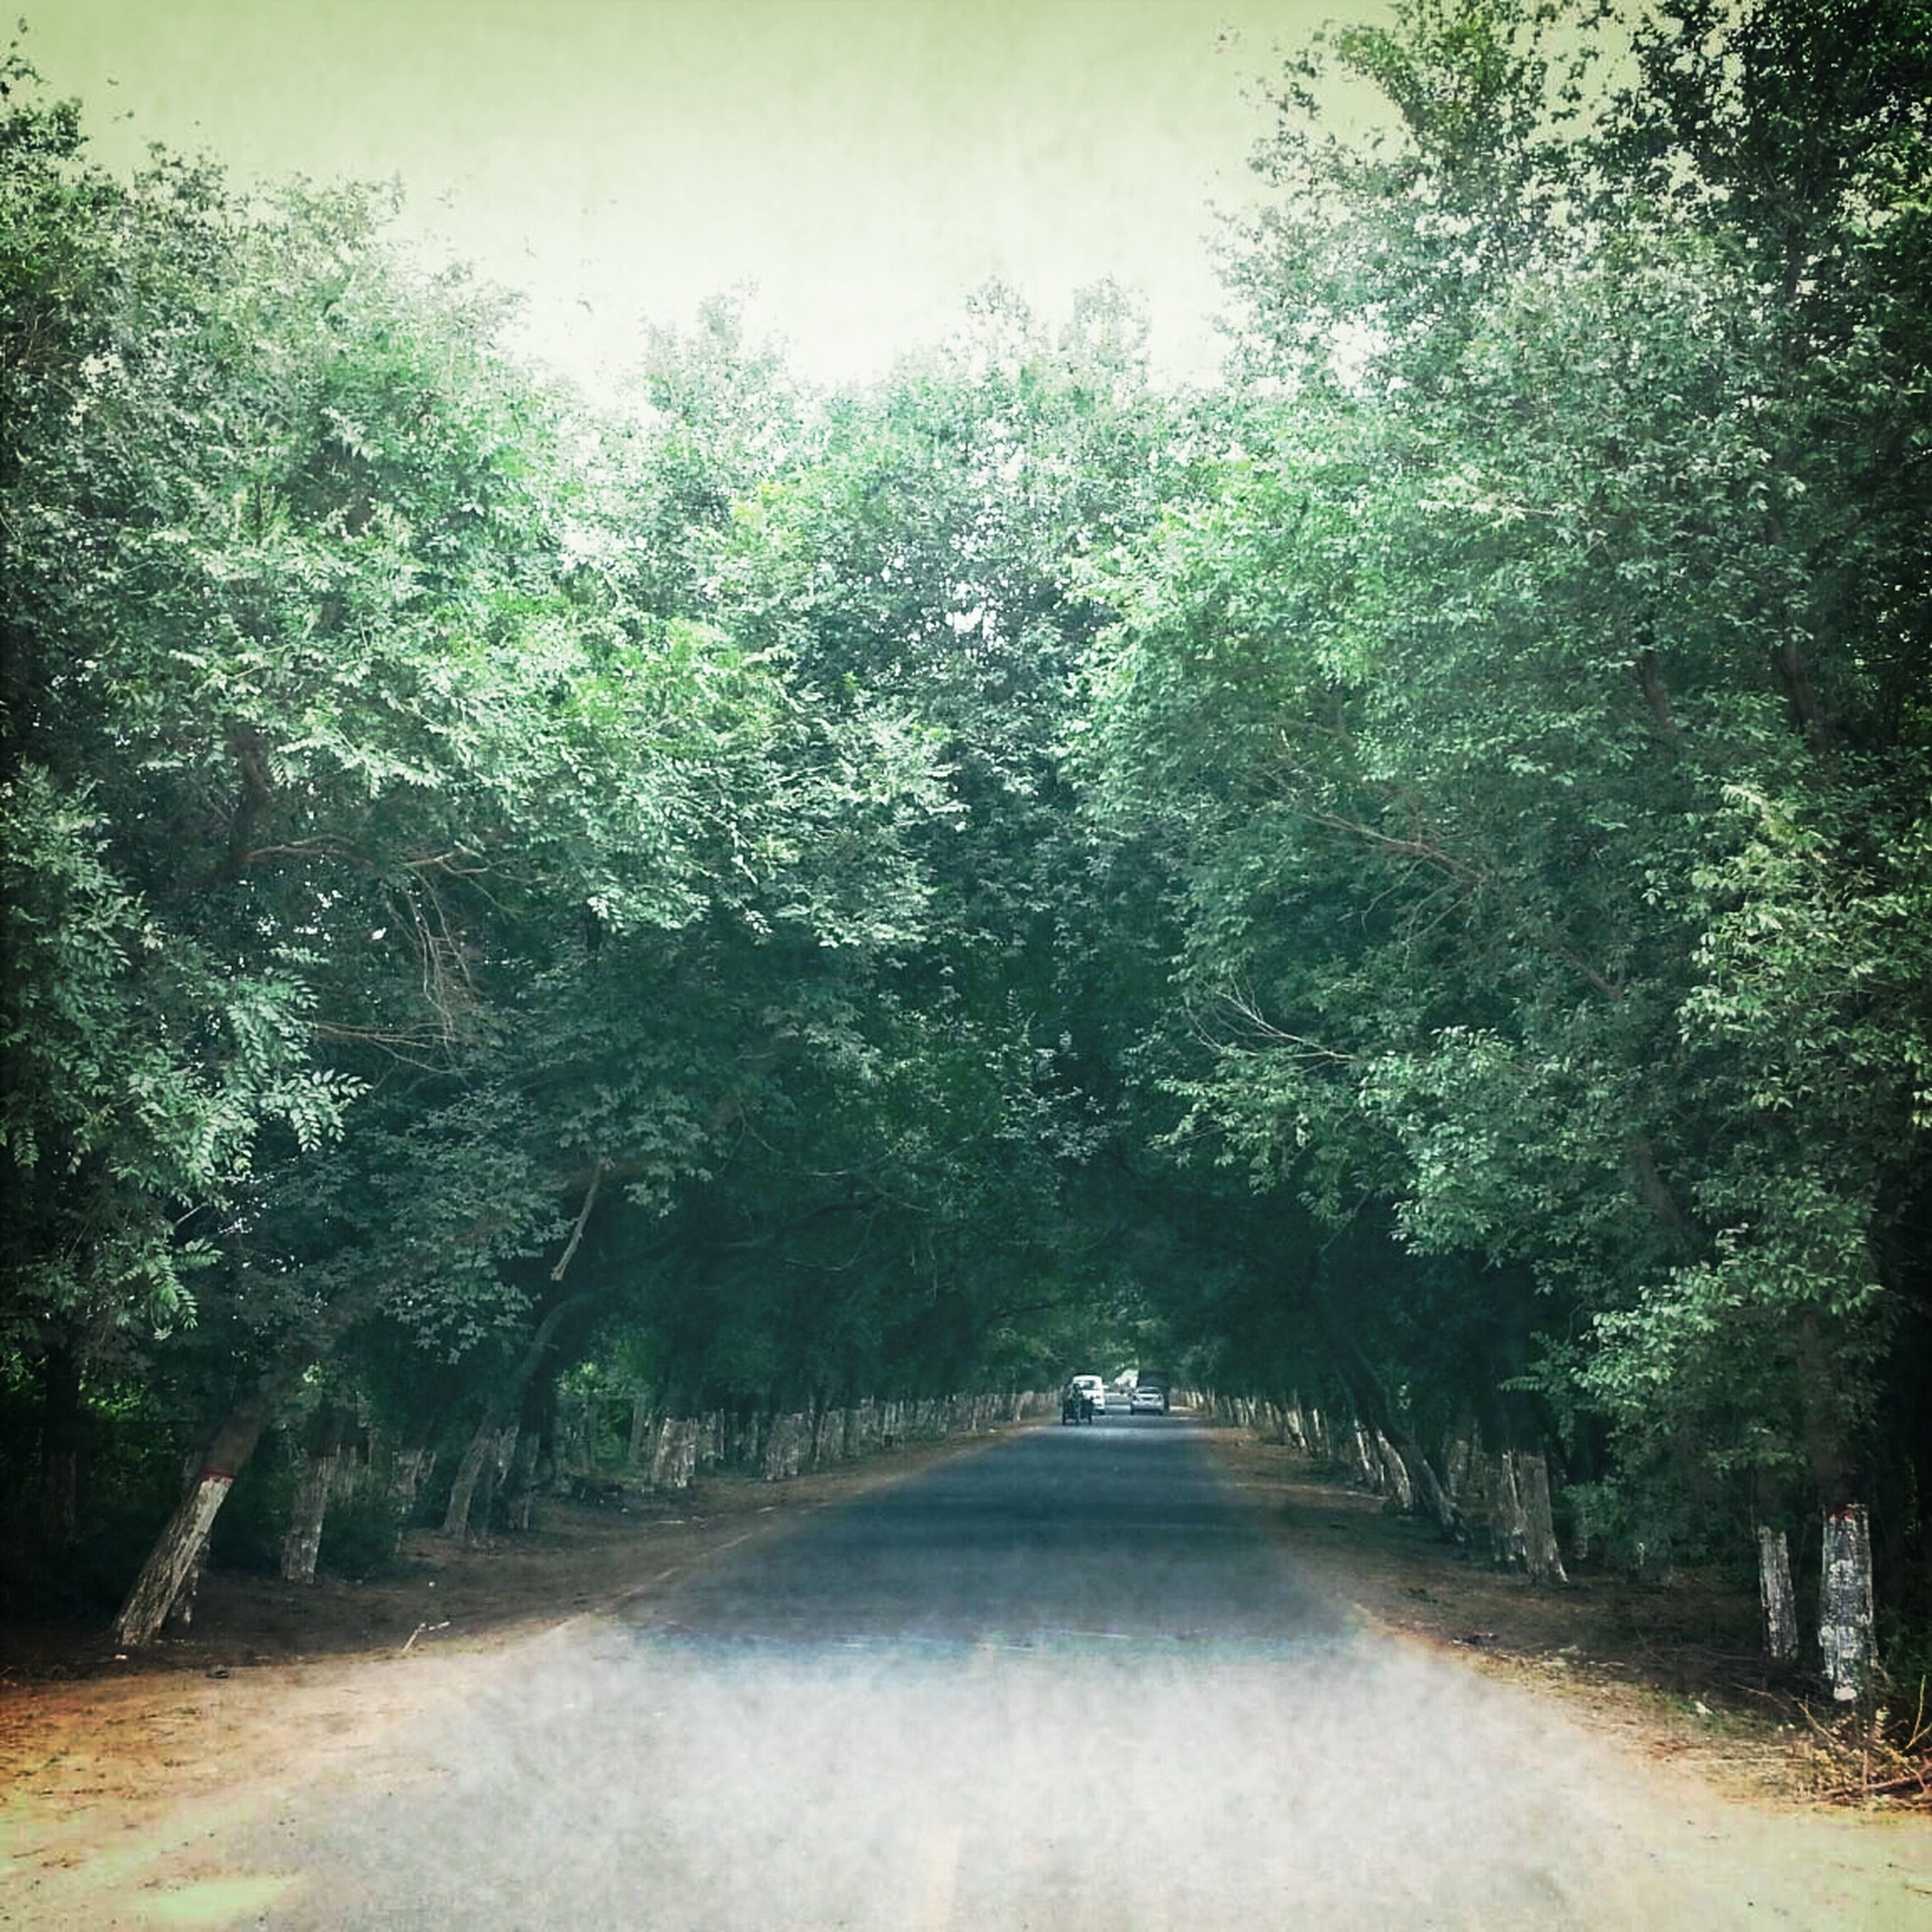 tree, the way forward, tranquility, tranquil scene, growth, nature, beauty in nature, scenics, road, diminishing perspective, dirt road, footpath, forest, vanishing point, branch, day, outdoors, idyllic, green color, non-urban scene